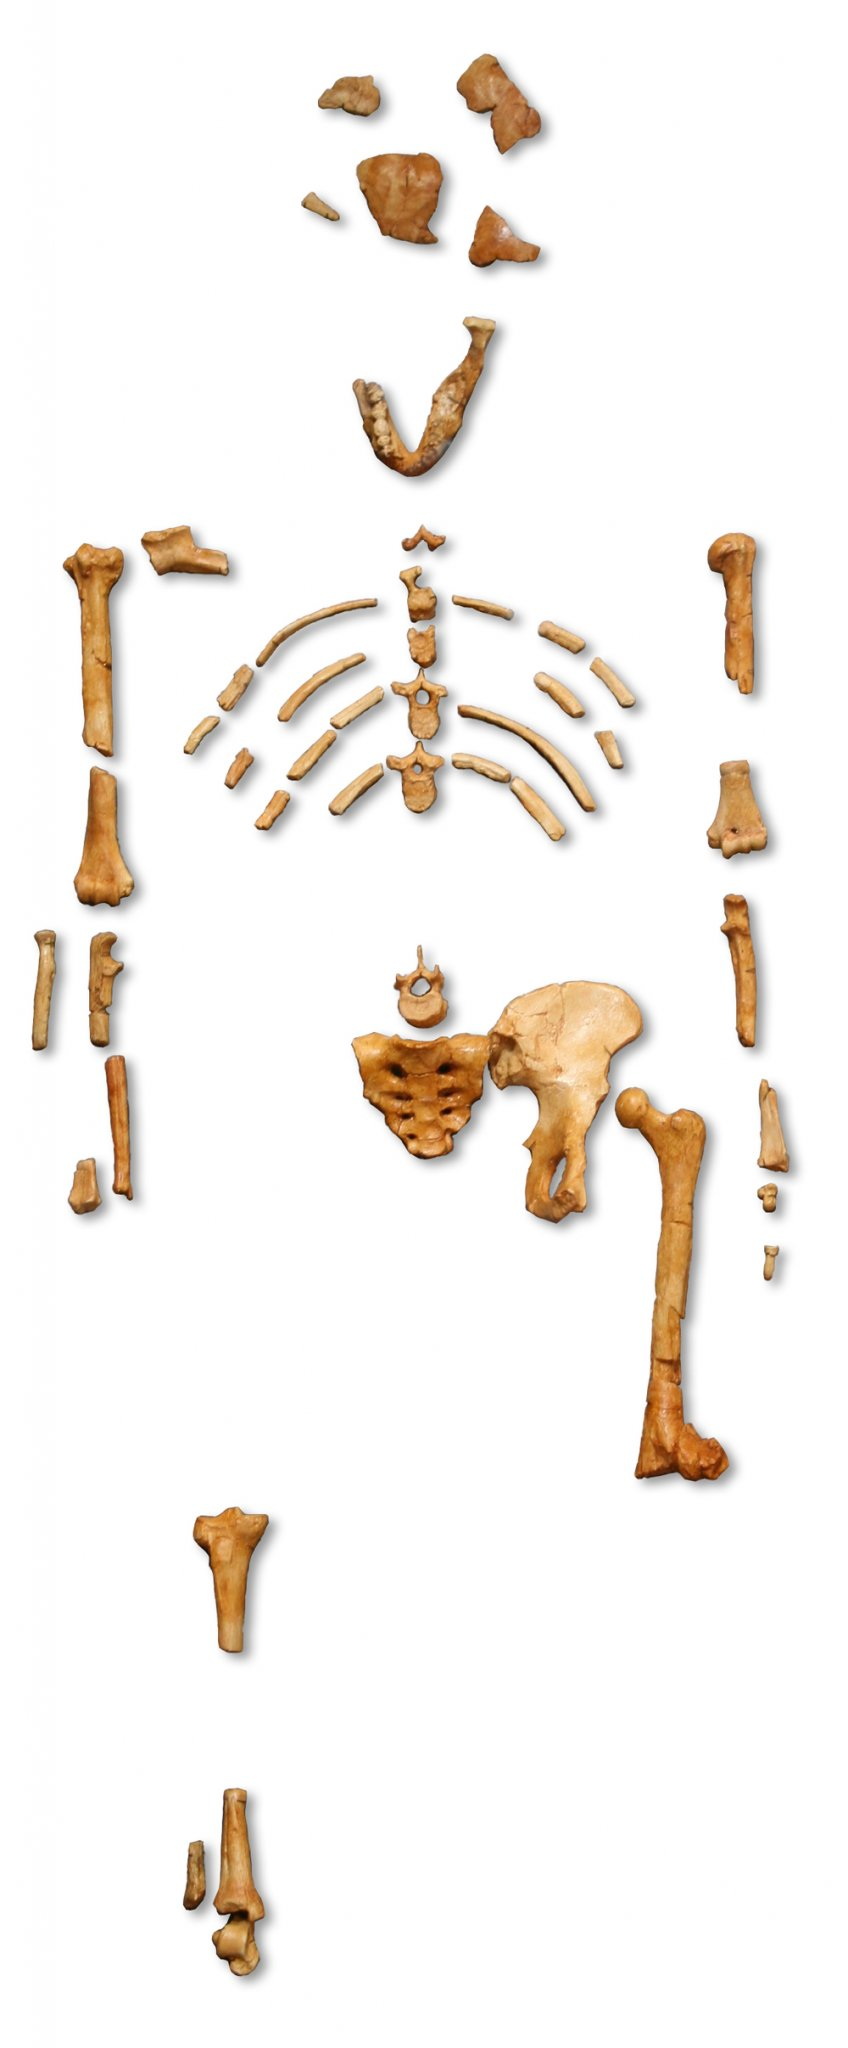 Reconstruction_of_the_fossil_skeleton_of__Lucy__the_Australopithecus_afarensis.jpg